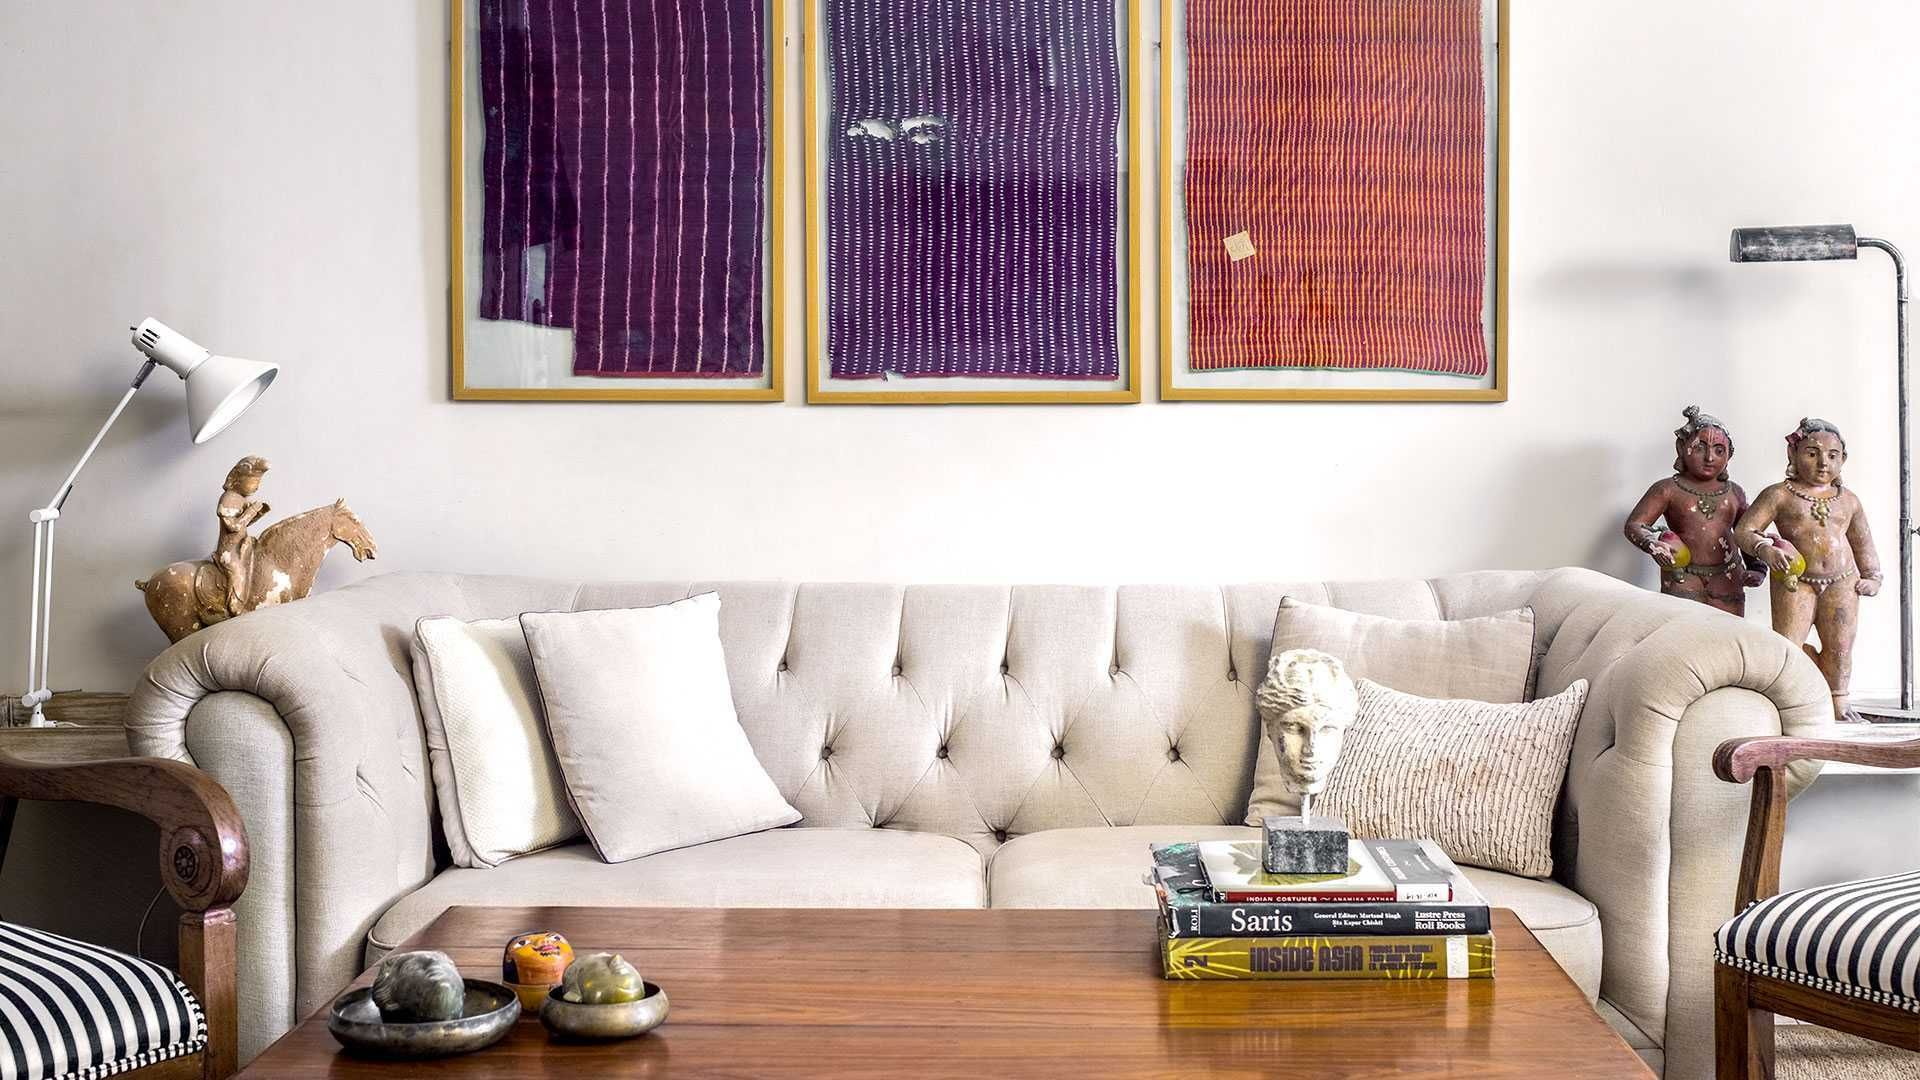 Walking the line between tradition and modernity is a delicate balancing act. Sanjay Garg's New Delhi home, much like his designs, carries it off with the grounded flair he is known for